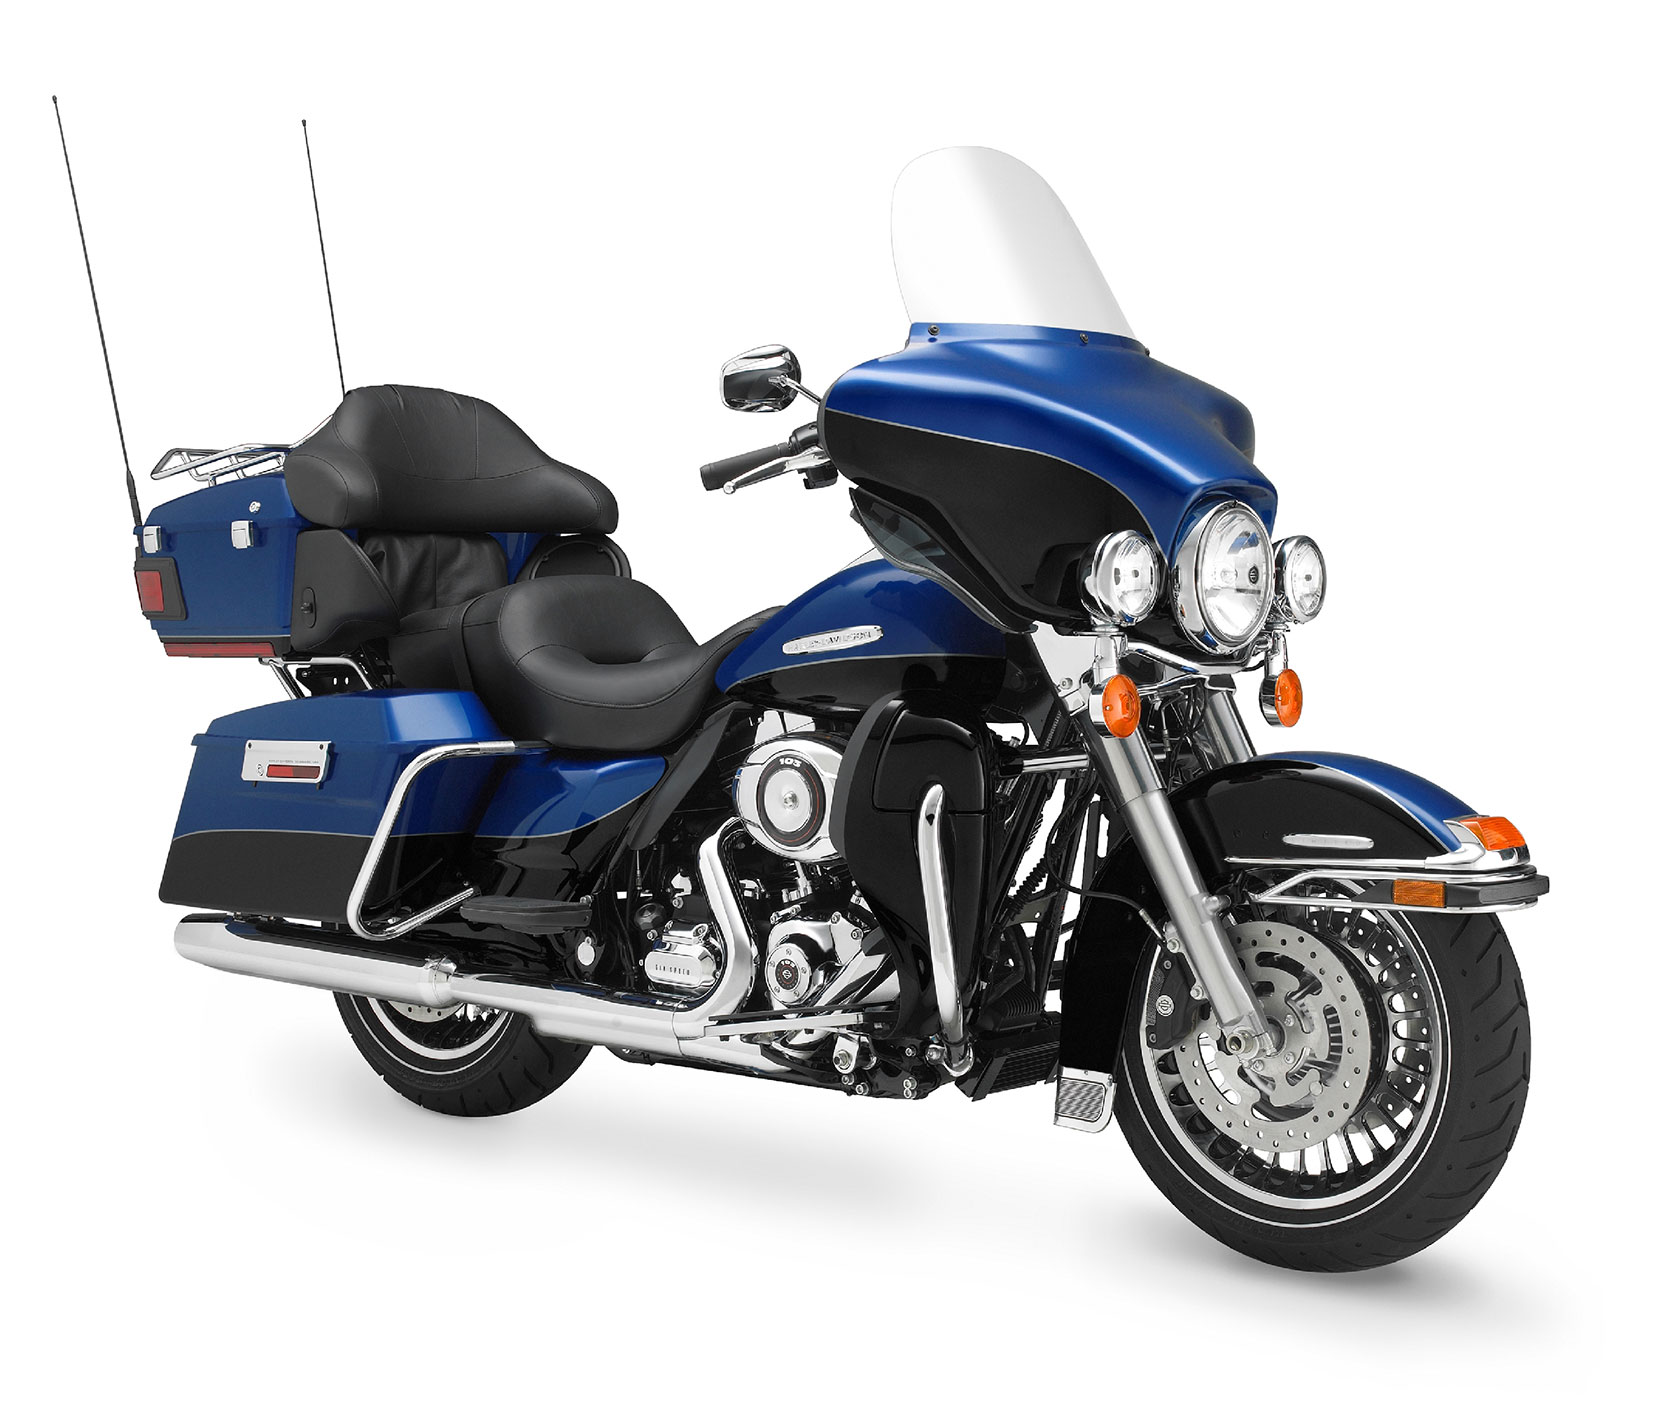 2010 harley davidson electra glide ultra limited flhtk. Black Bedroom Furniture Sets. Home Design Ideas